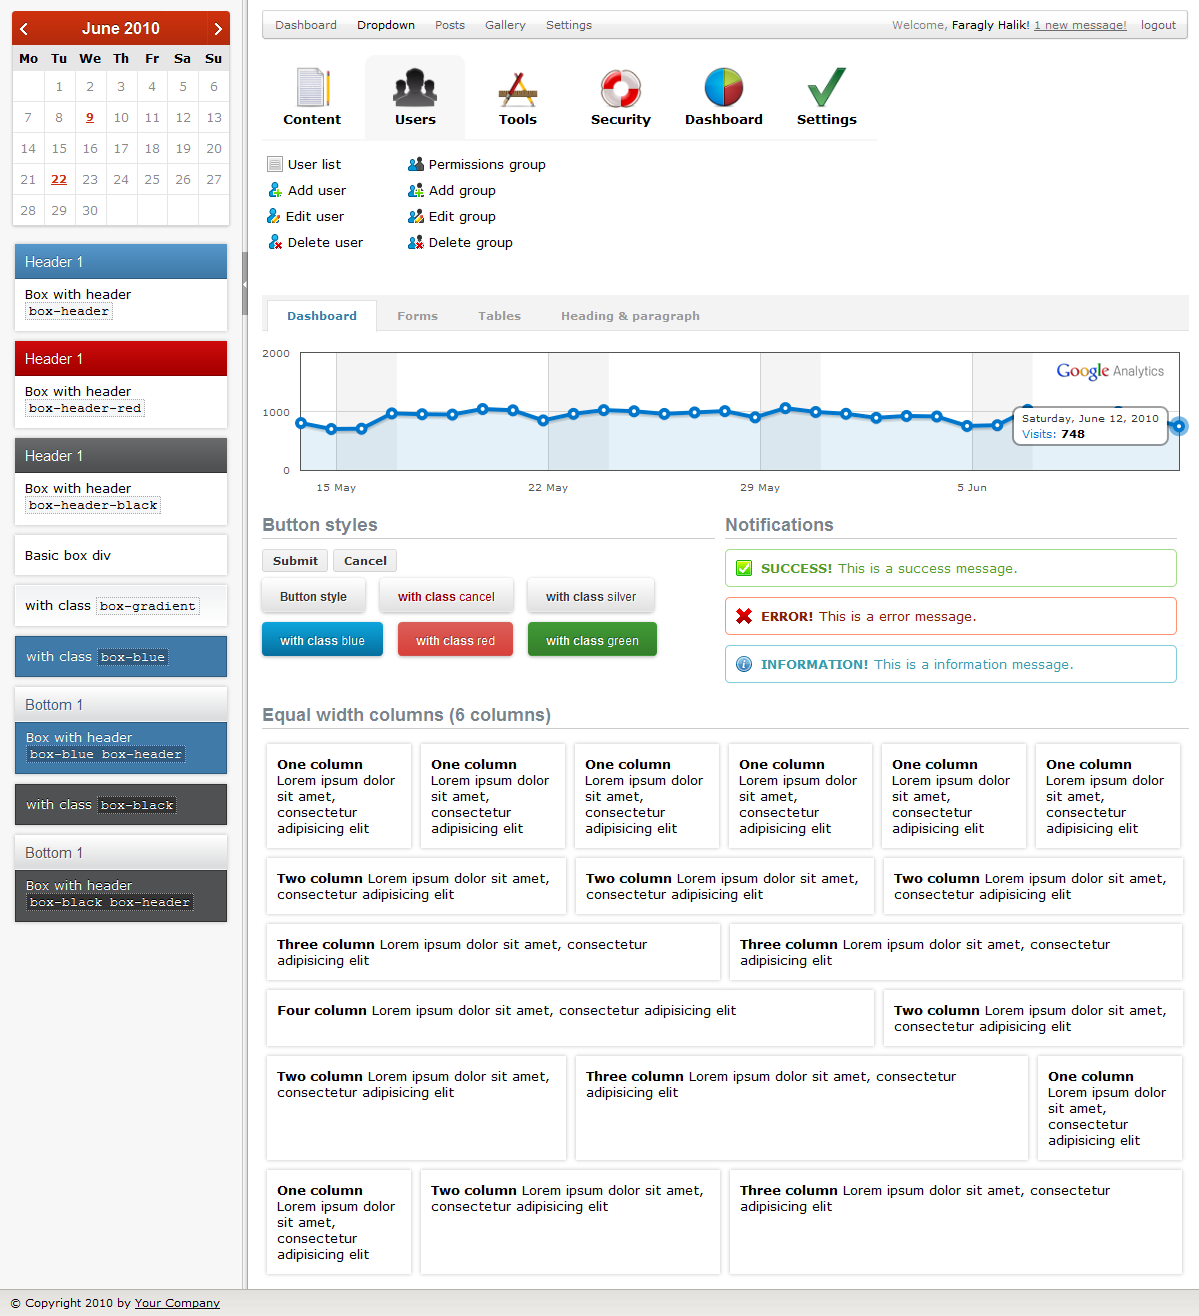 Karamel Admin - Screenshot of Dashboard page